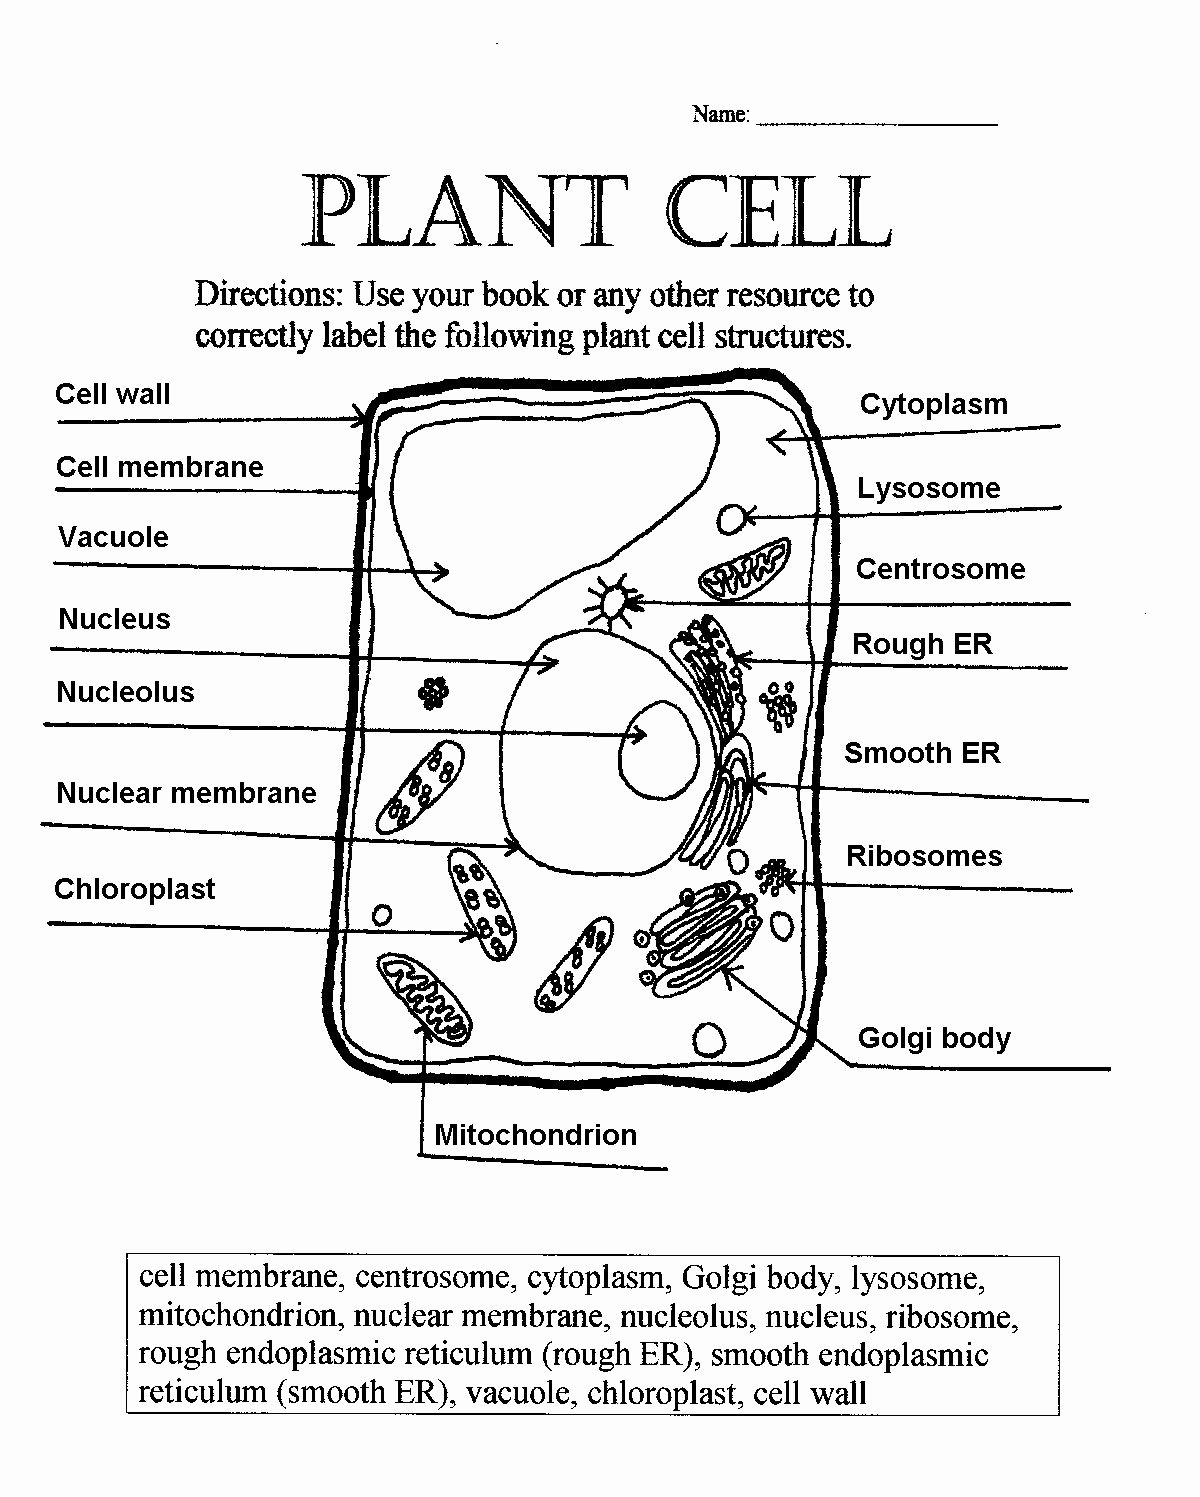 Plant Cell Worksheets to Label top Animal and Plant Cells Worksheet Inspirational 1000